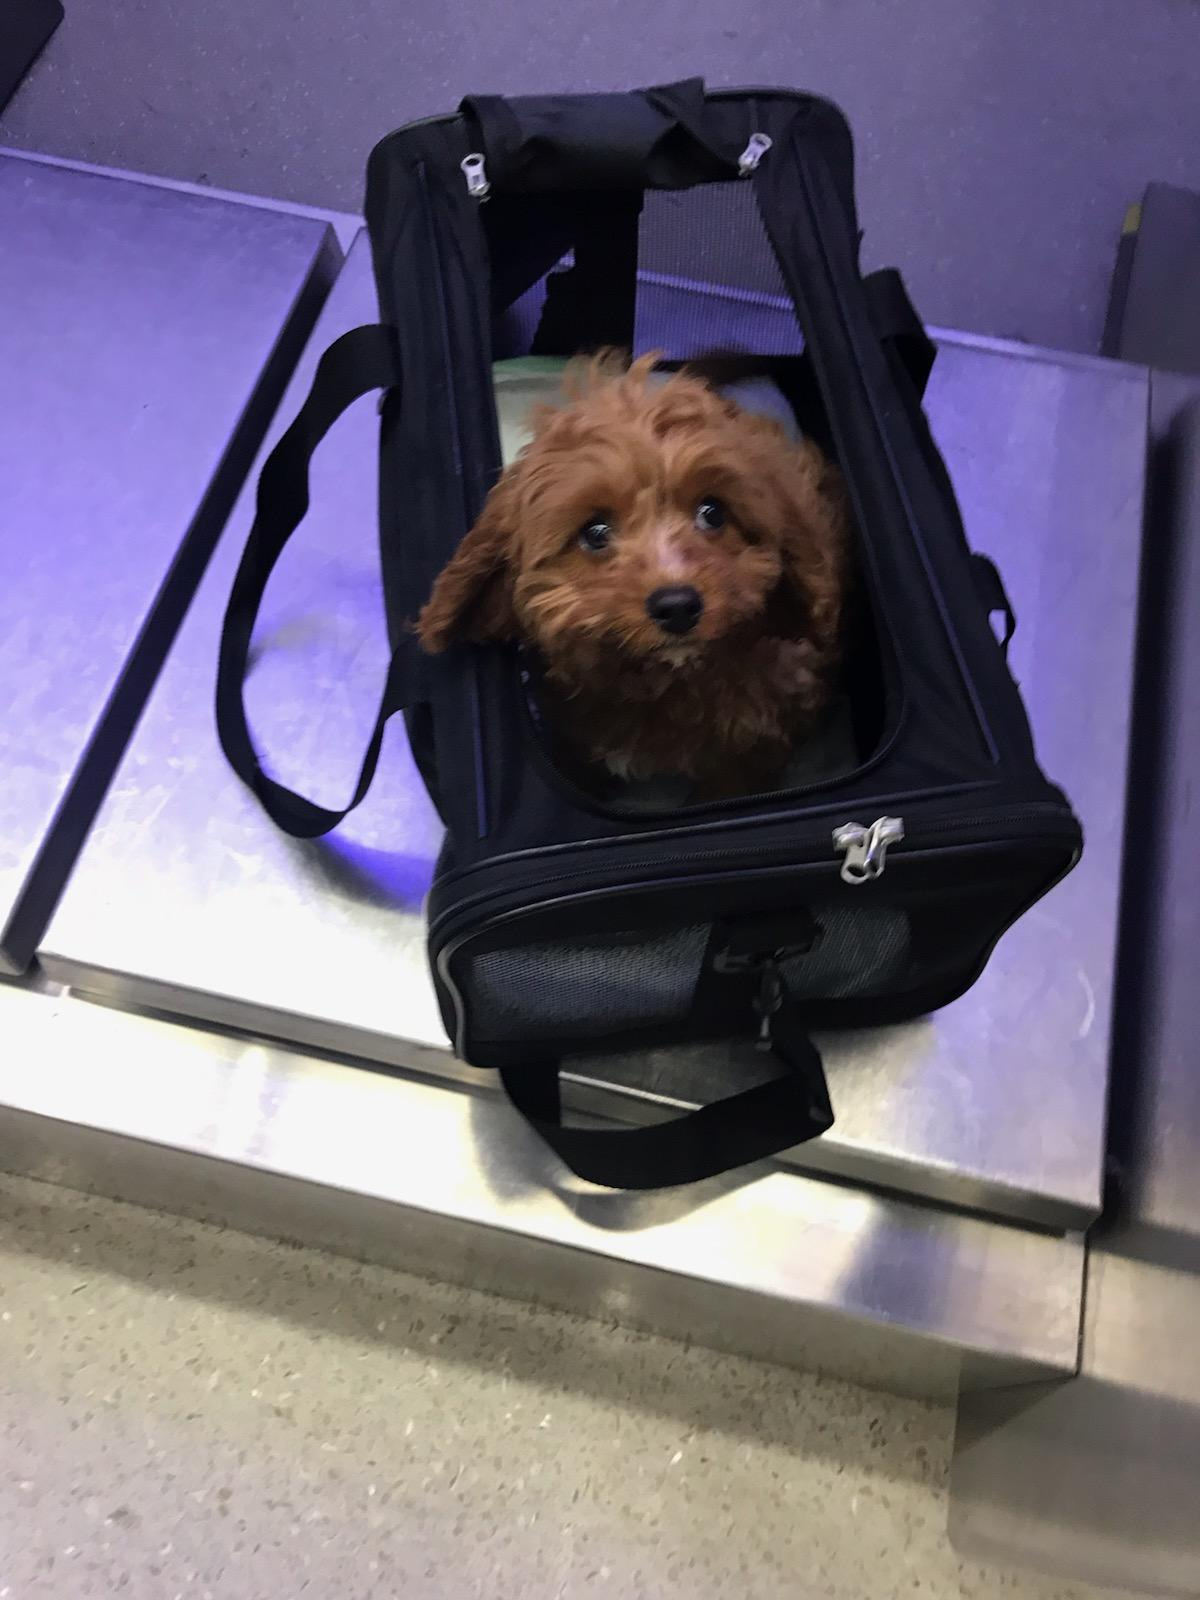 Puppy in carrier ready to fly on airplane